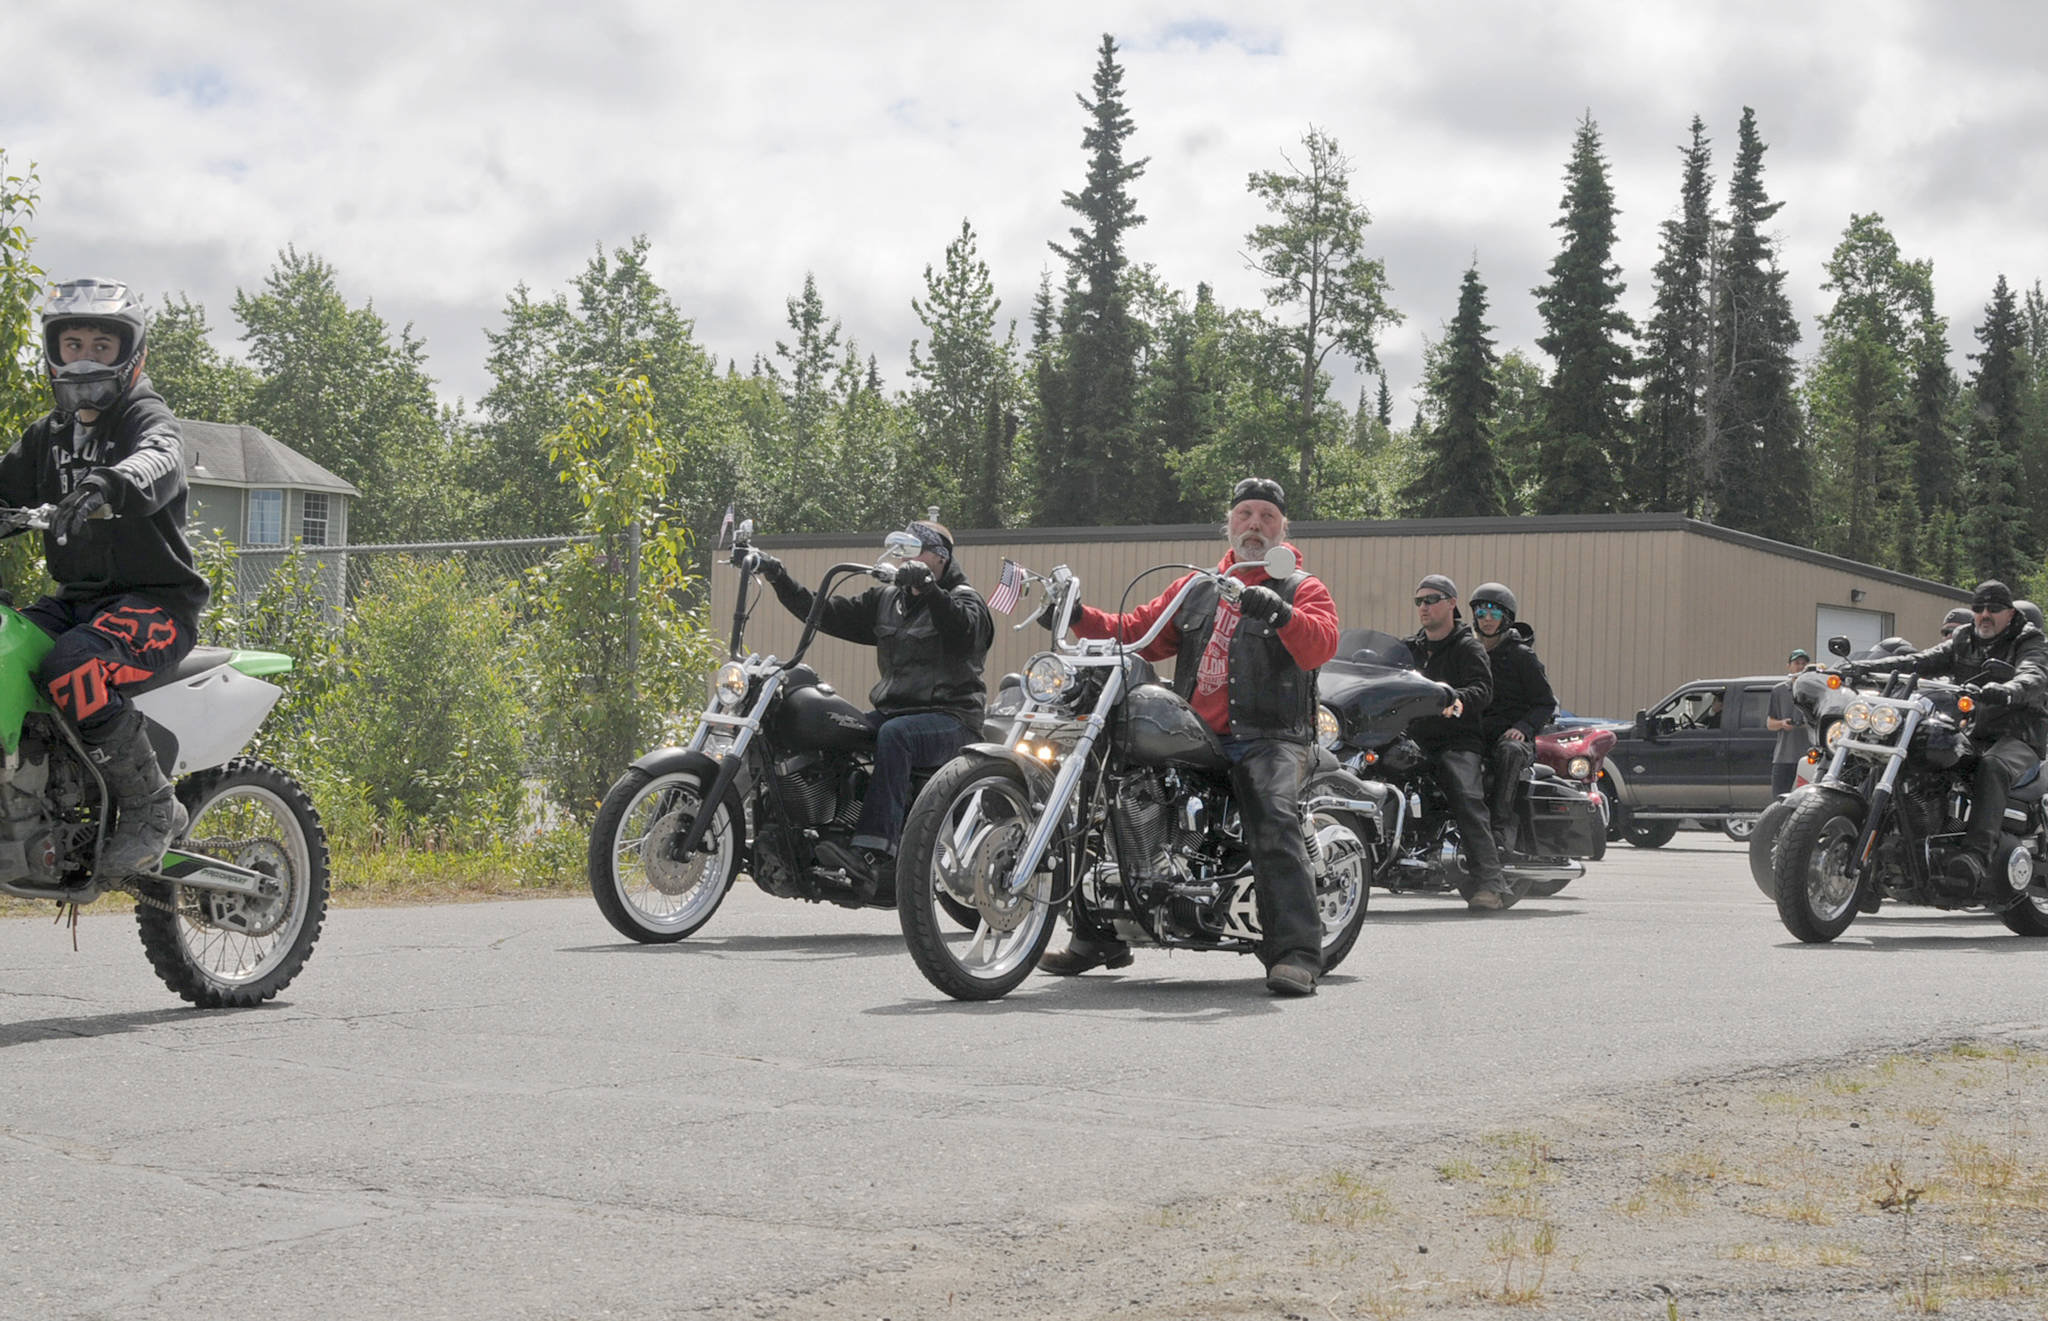 Motorcyclists line up as part of a procession to Travis Stubblefield's memorial service at the driveway of the Harley-Davidson Motorcycles store on Saturday, June 30, 2018 in Soldotna, Alaska. Stubblefield, a lifelong resident of the Soldotna area, was killed June 21 in a conflict in Kasilof. Alaska State Troopers are investigating the circumstances of his death, though no charges have yet been filed. (Photo by Elizabeth Earl/Peninsula Clarion)